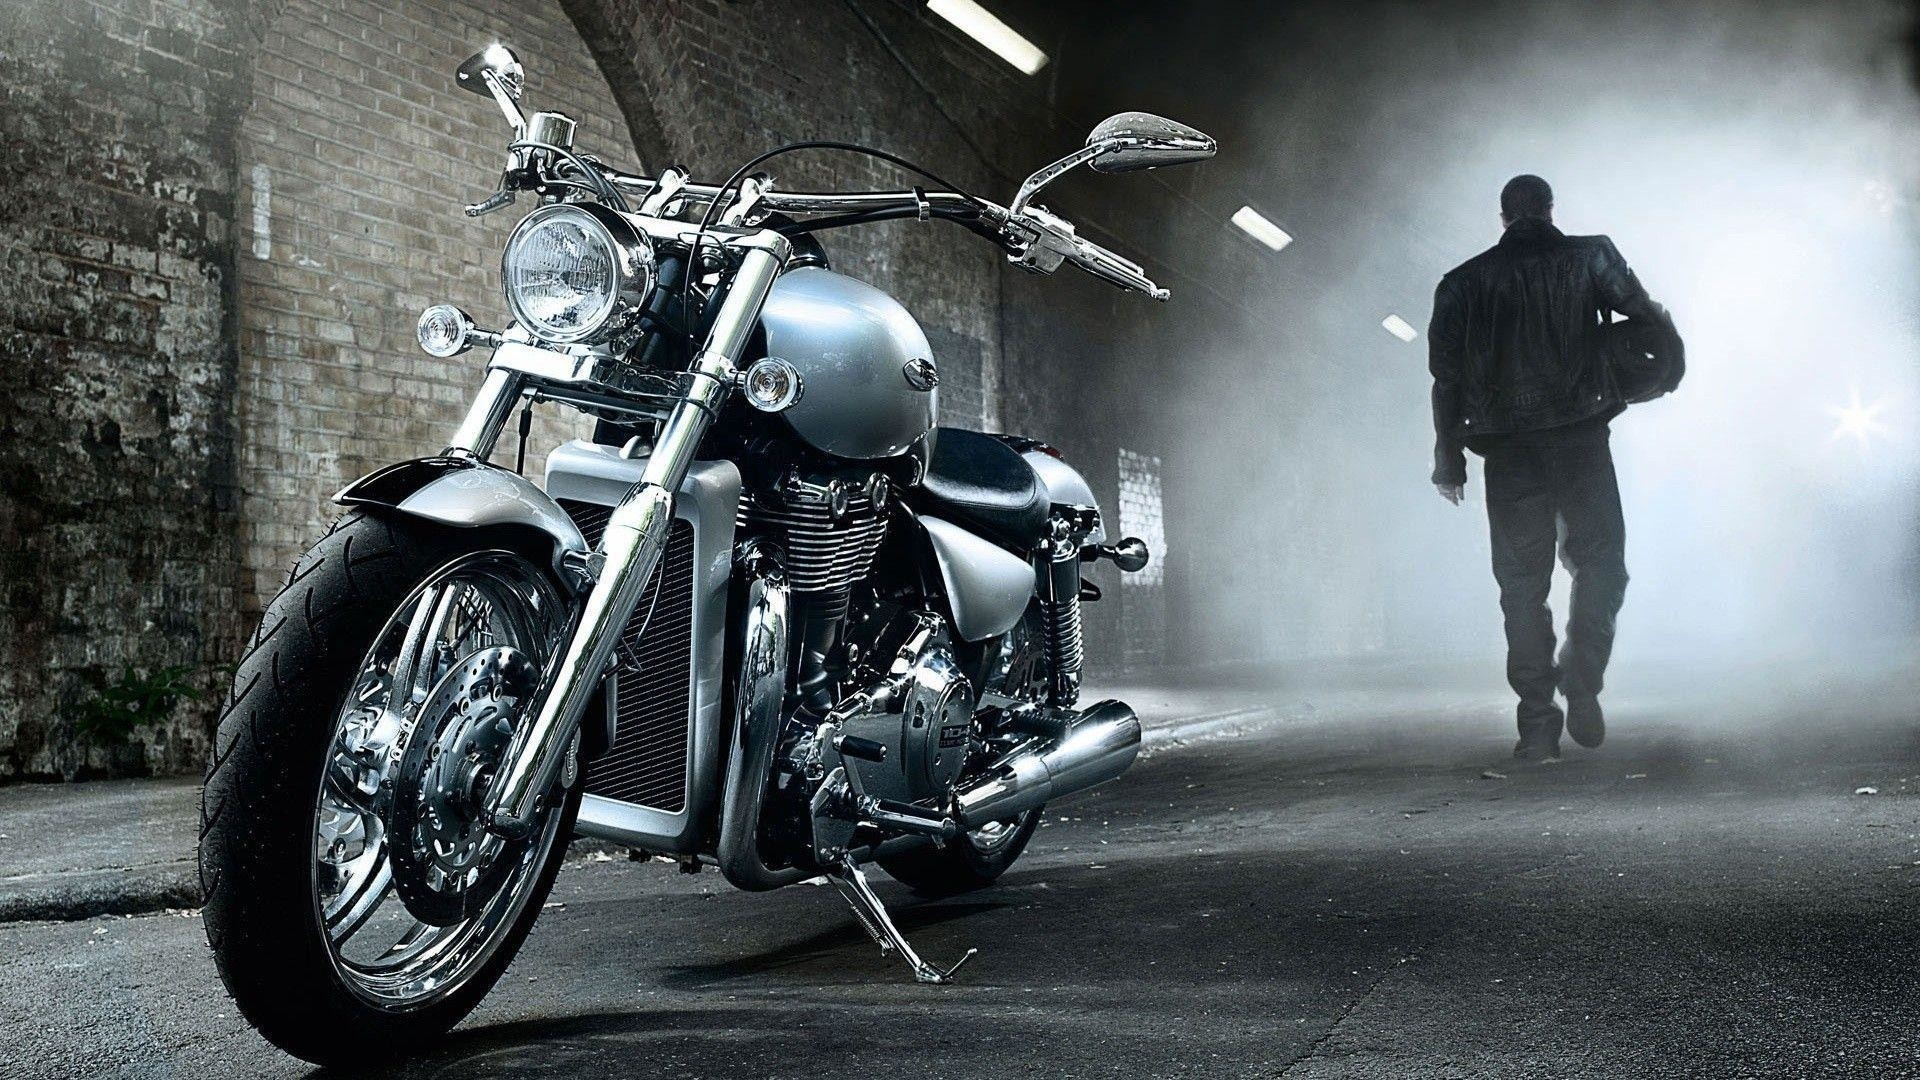 1920x1080 Harley Davidson Wallpaper Download | Wide Wallpapers